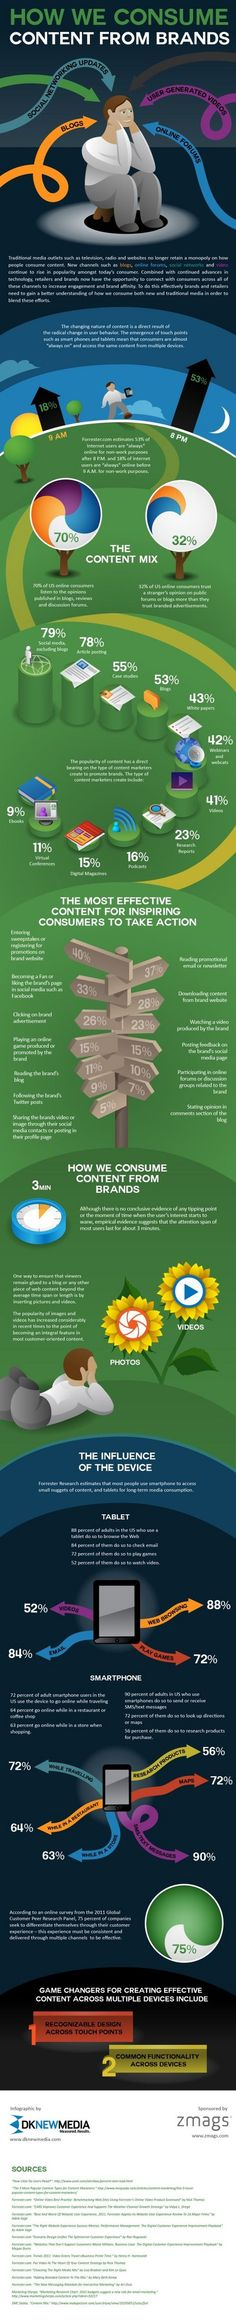 How we consume content #Infographic #ContentMarketing www.socialmediamamma.com